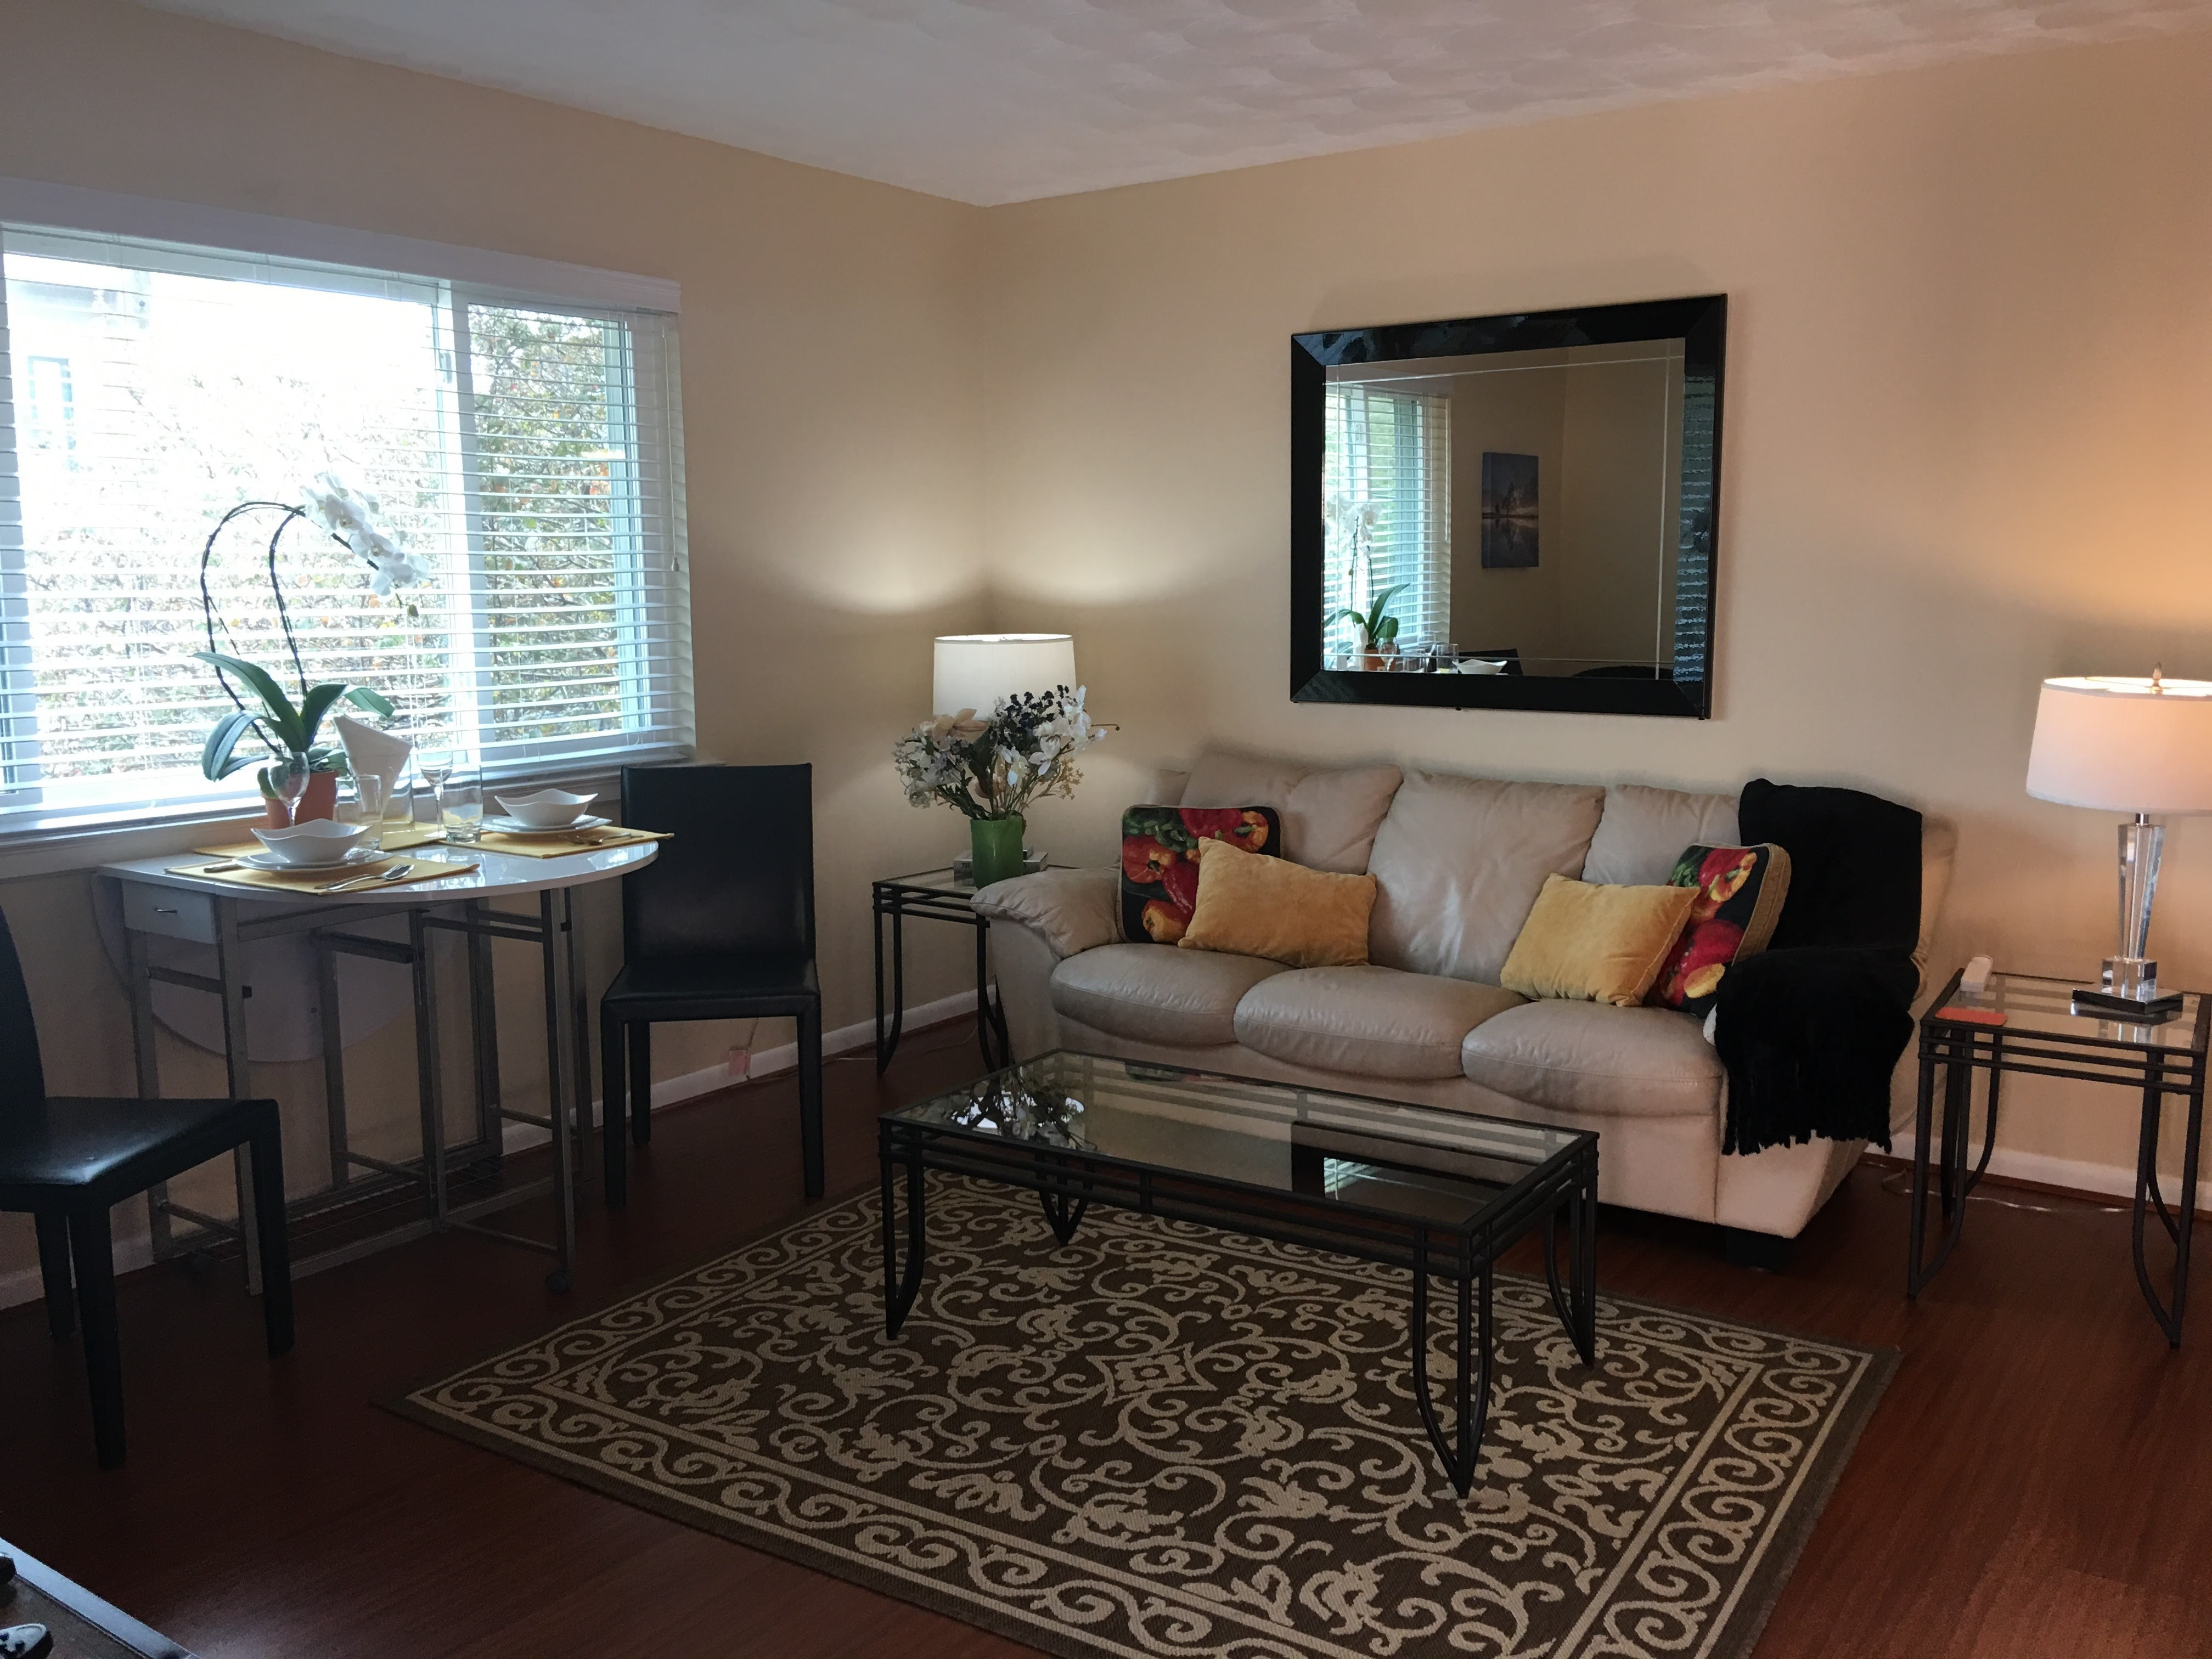 Short-term stay apartments near downtown dallas